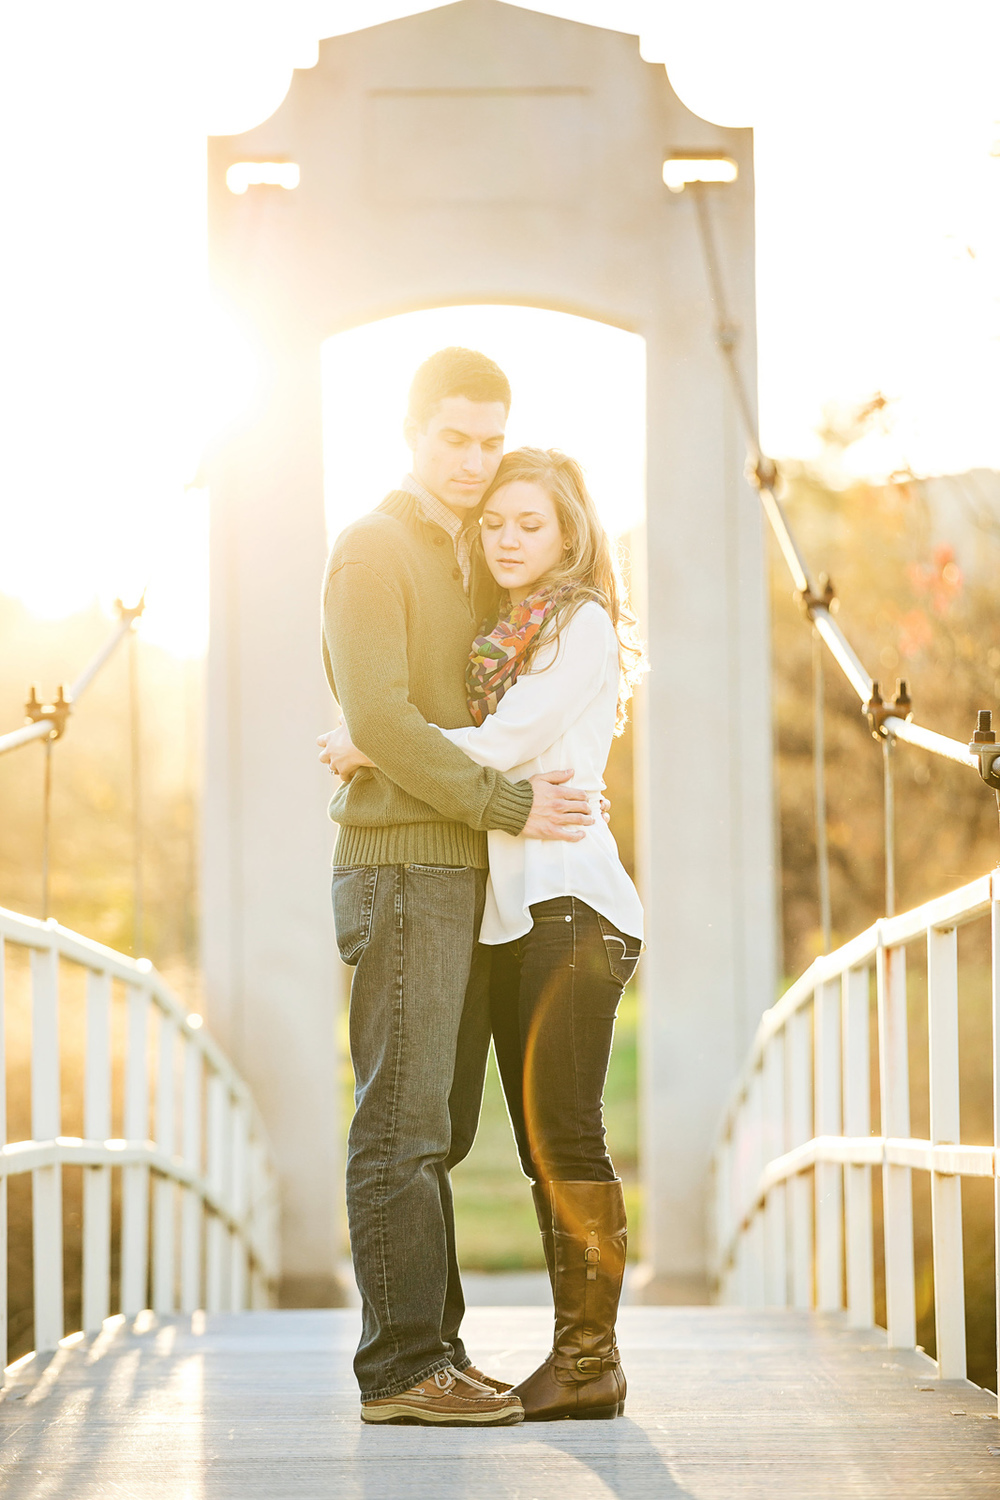 Oldani Photography-St Louis-Forest Park-Grand Basin-Engagement Session-engagement photos_20141108_171355-2.jpg